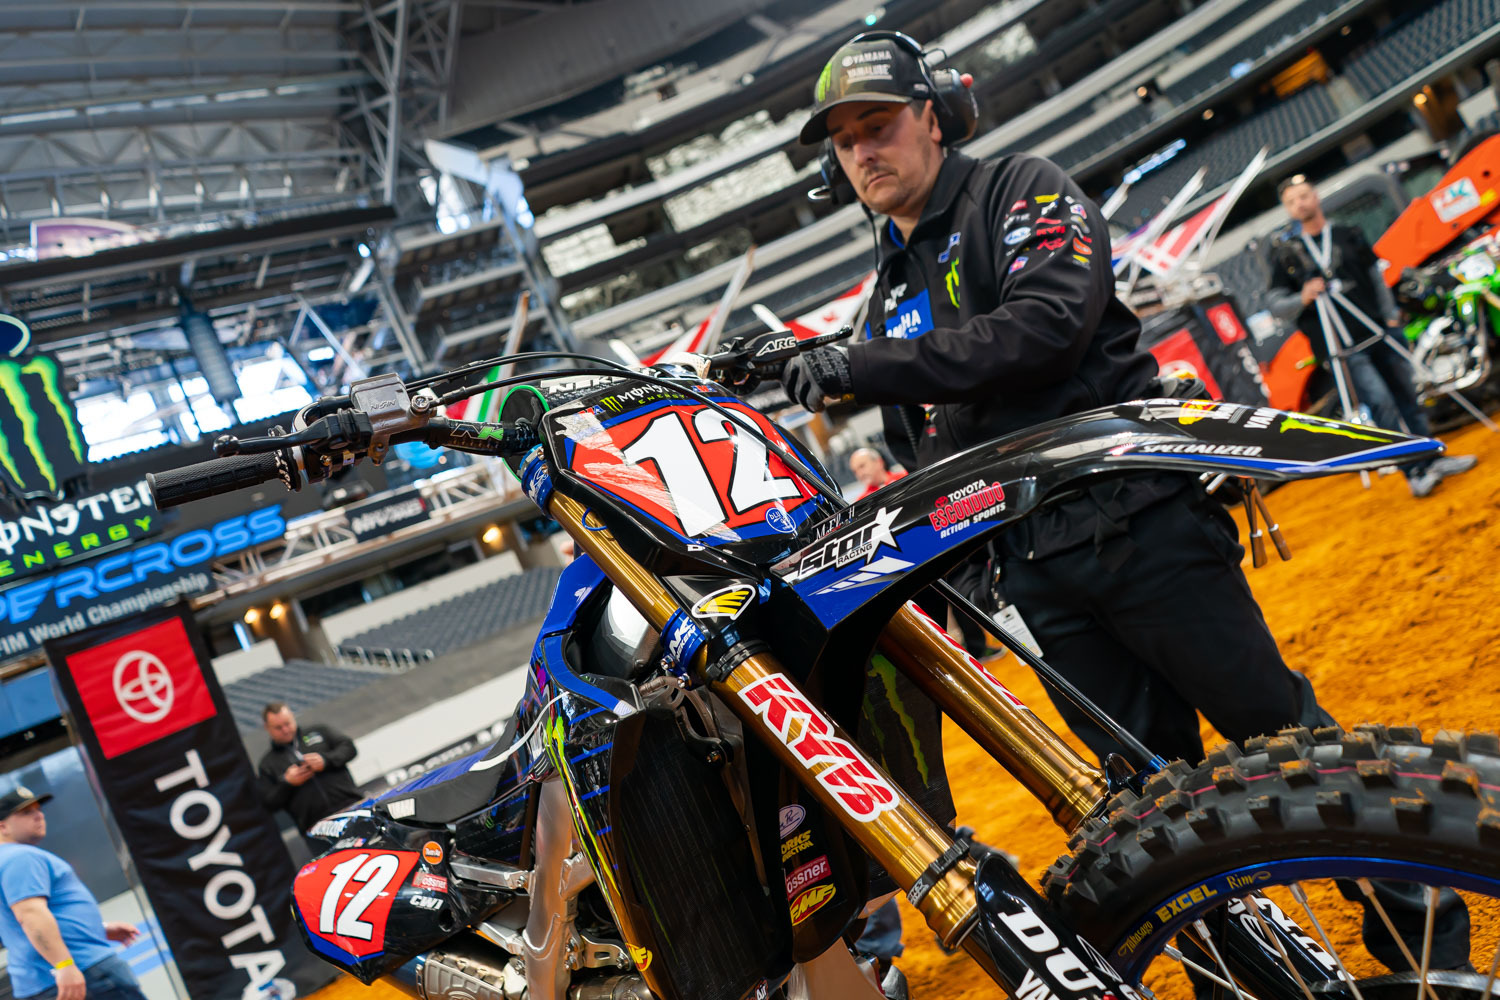 2020-ARLINGTON-SUPERCROSS_KICKSTART_0001